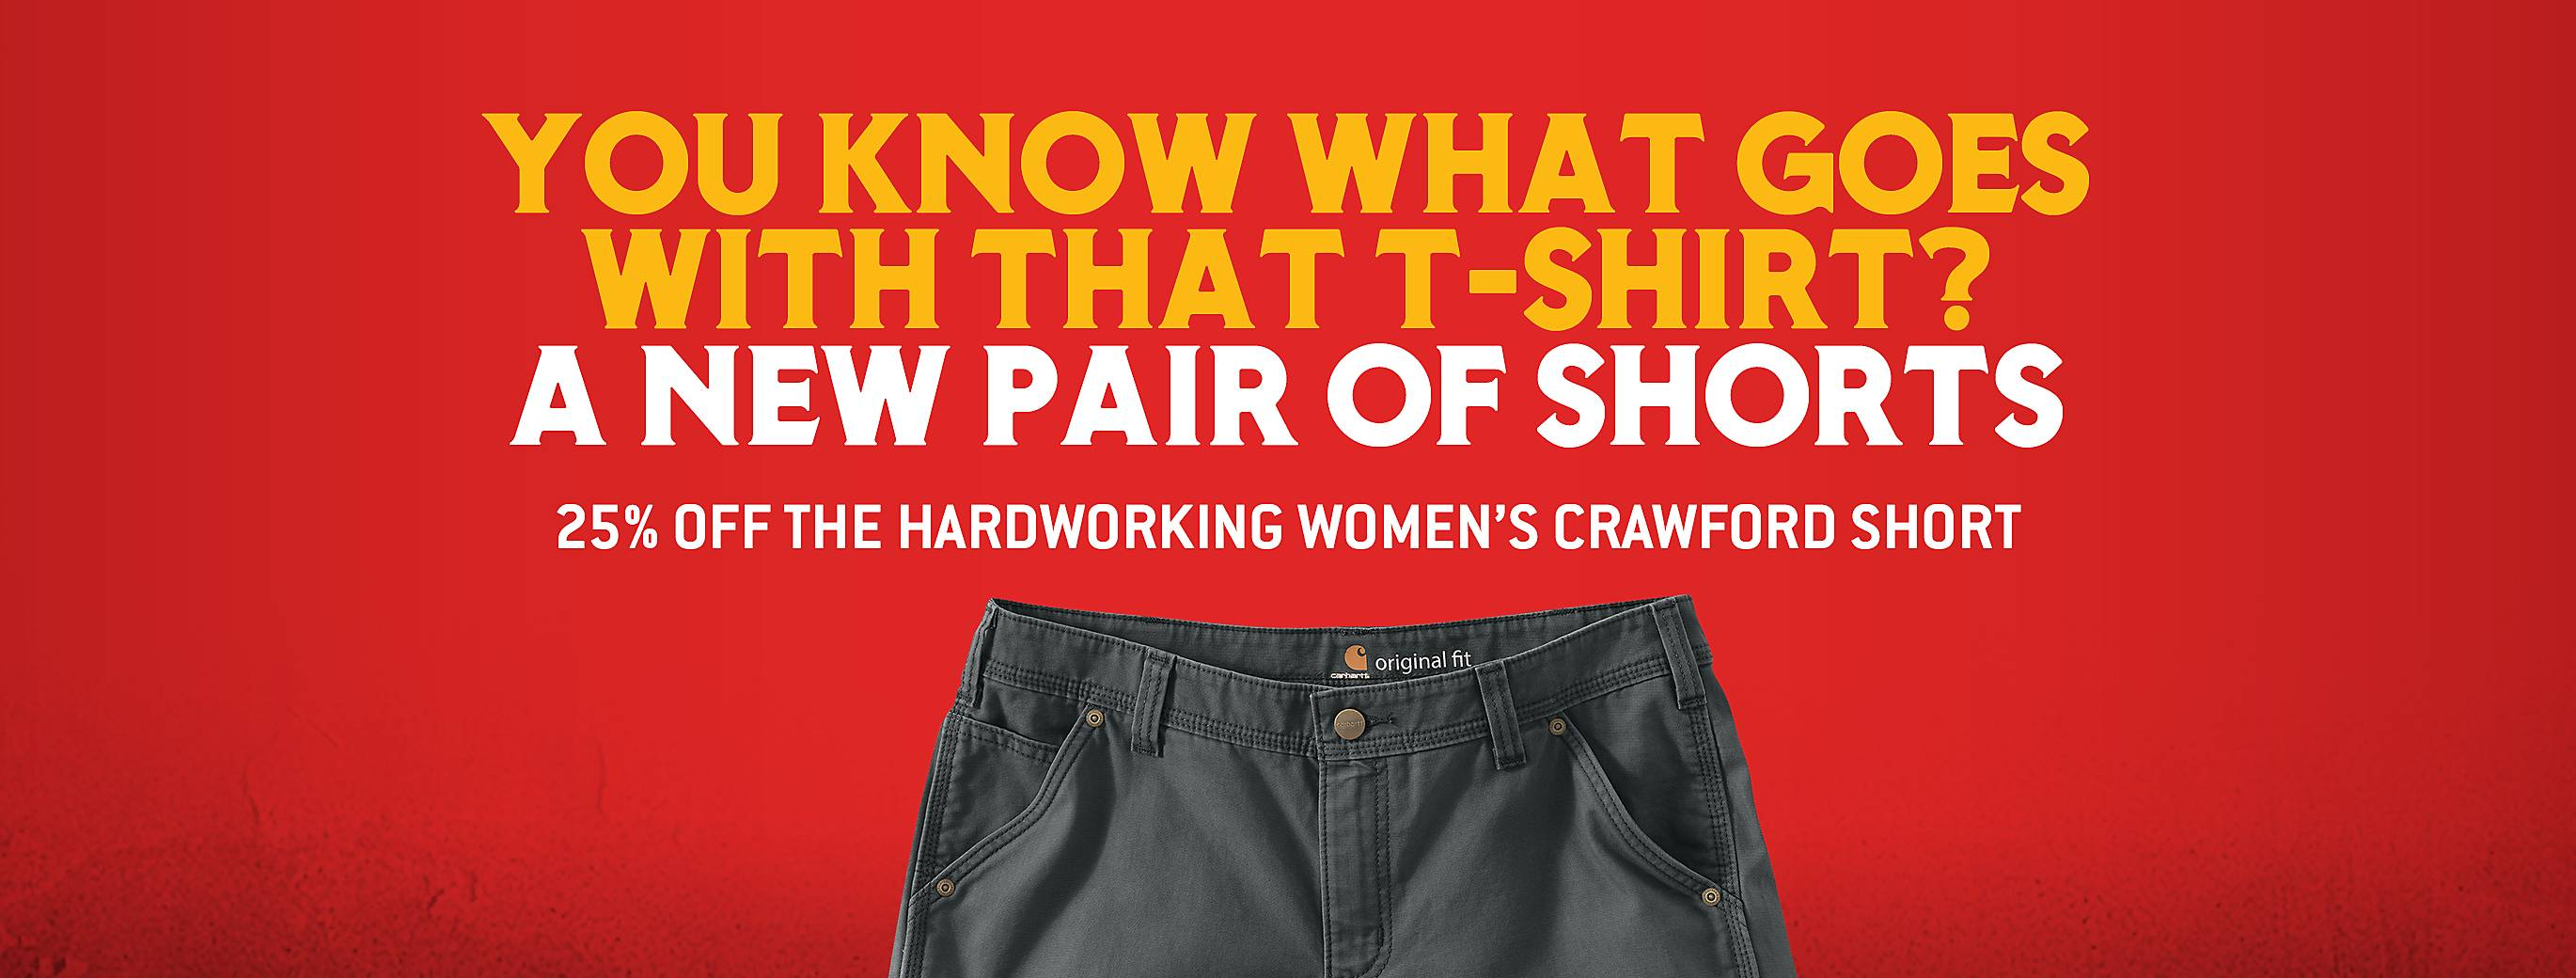 You know what goes with that t-shirt? A new pair of shorts, 25 percent off the hardworking women's crawford short